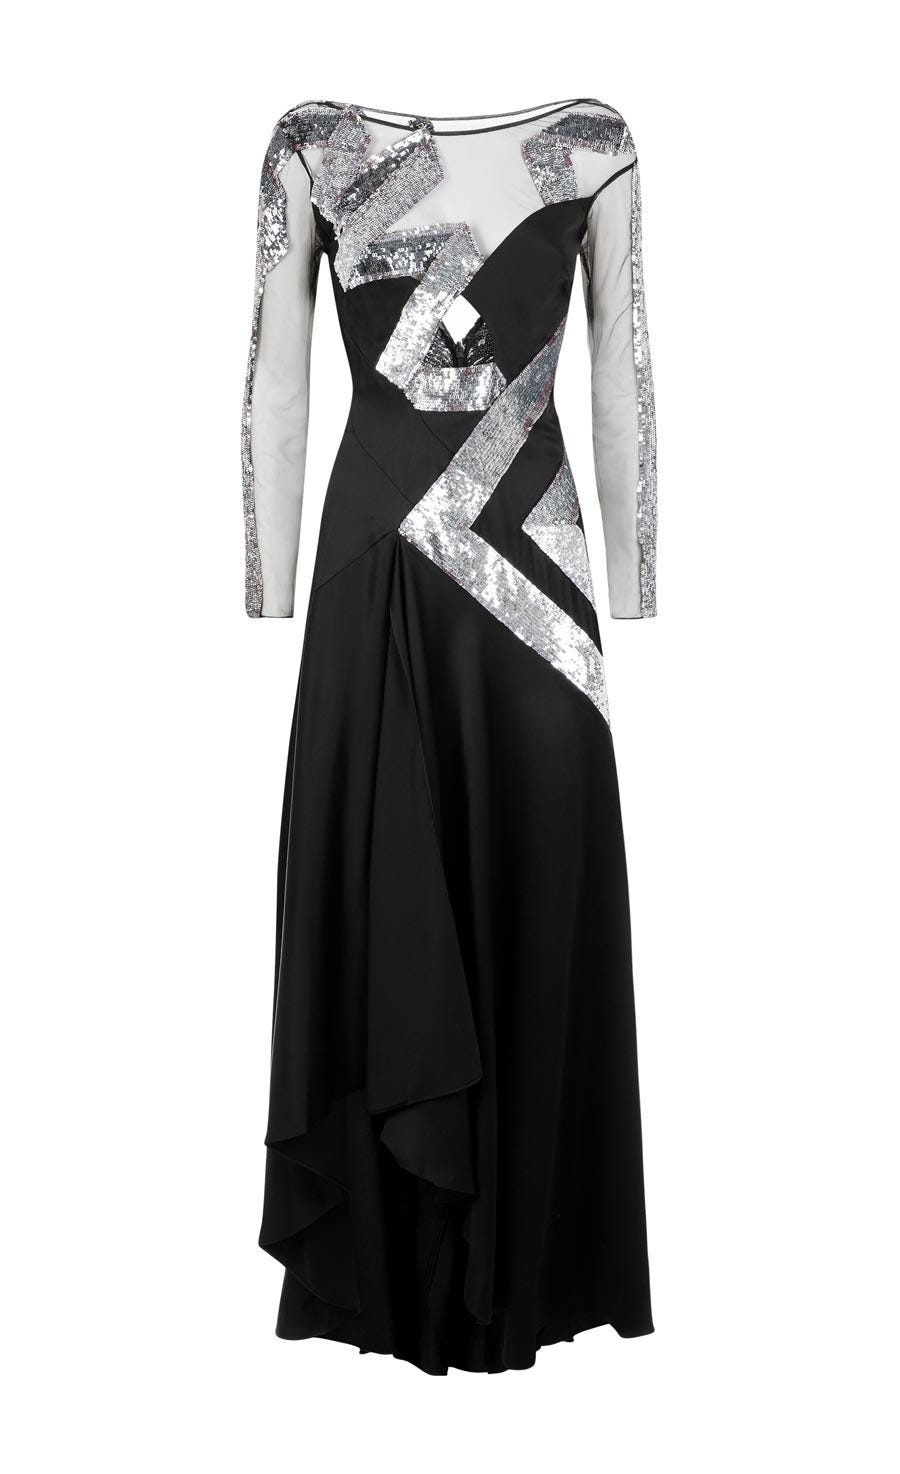 Insignia Sleeved Gown